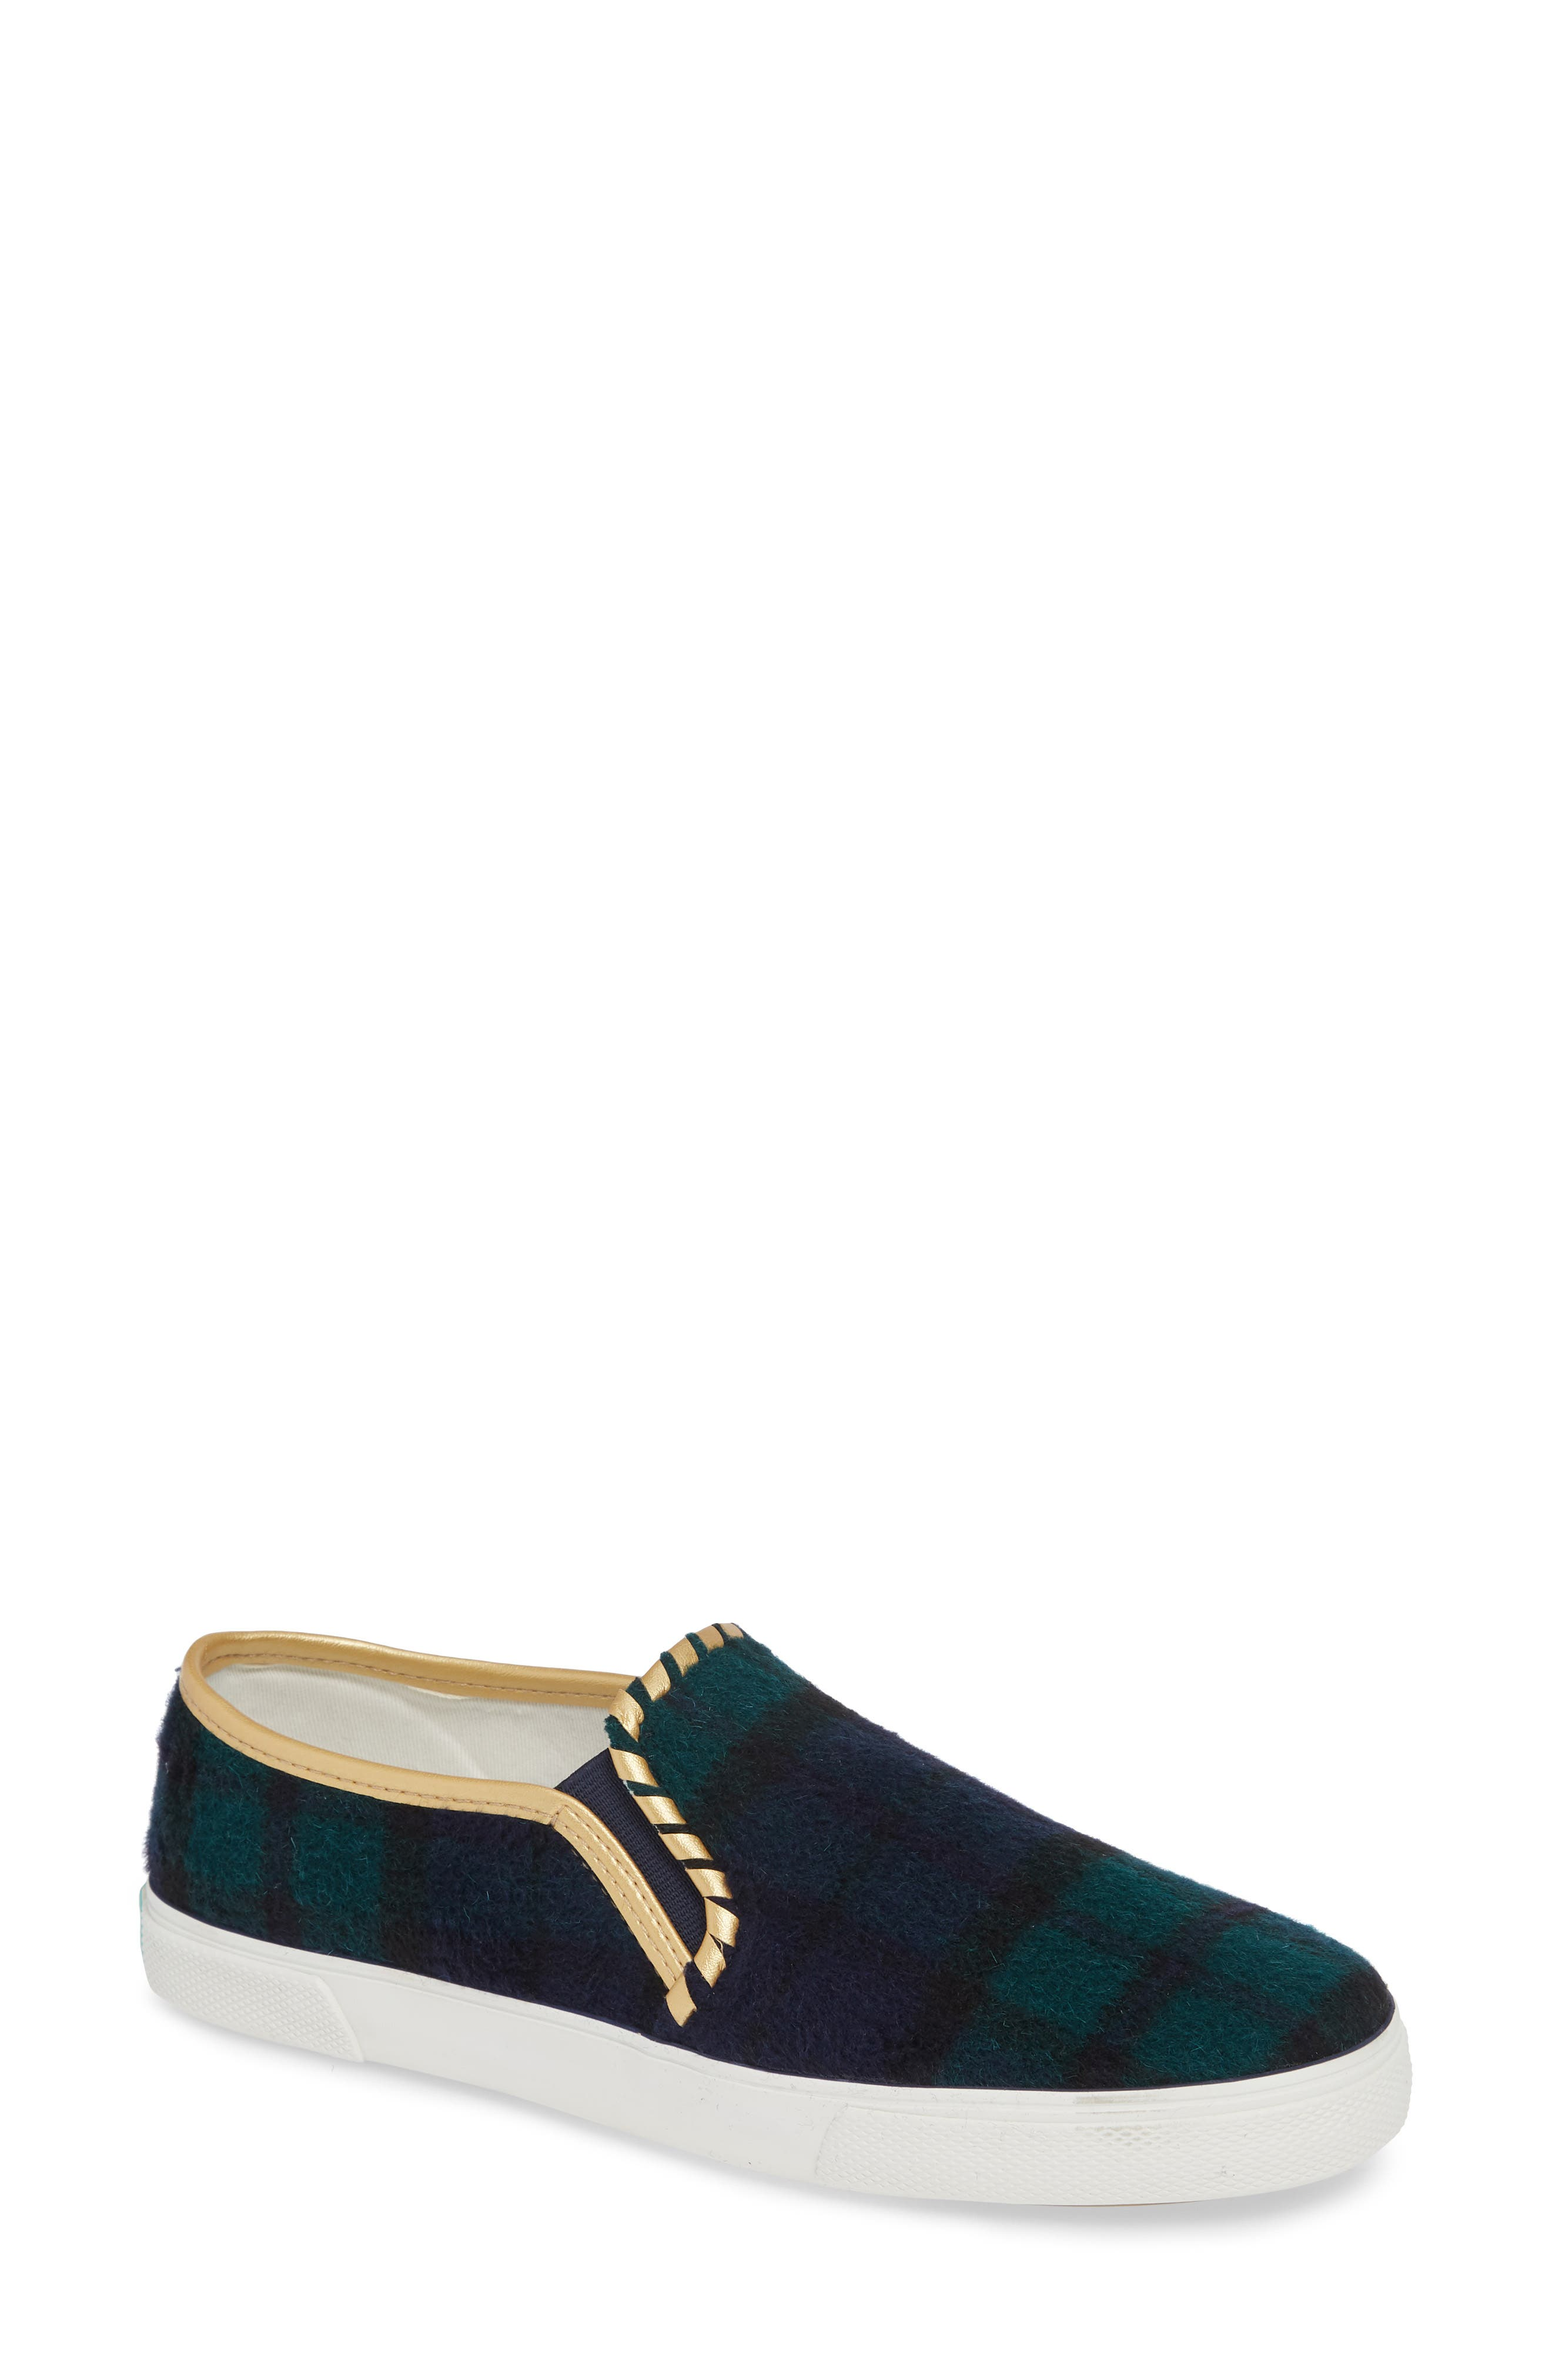 Brynne Slip-On Sneaker,                             Main thumbnail 1, color,                             MIDNIGHT/ GREEN FABRIC